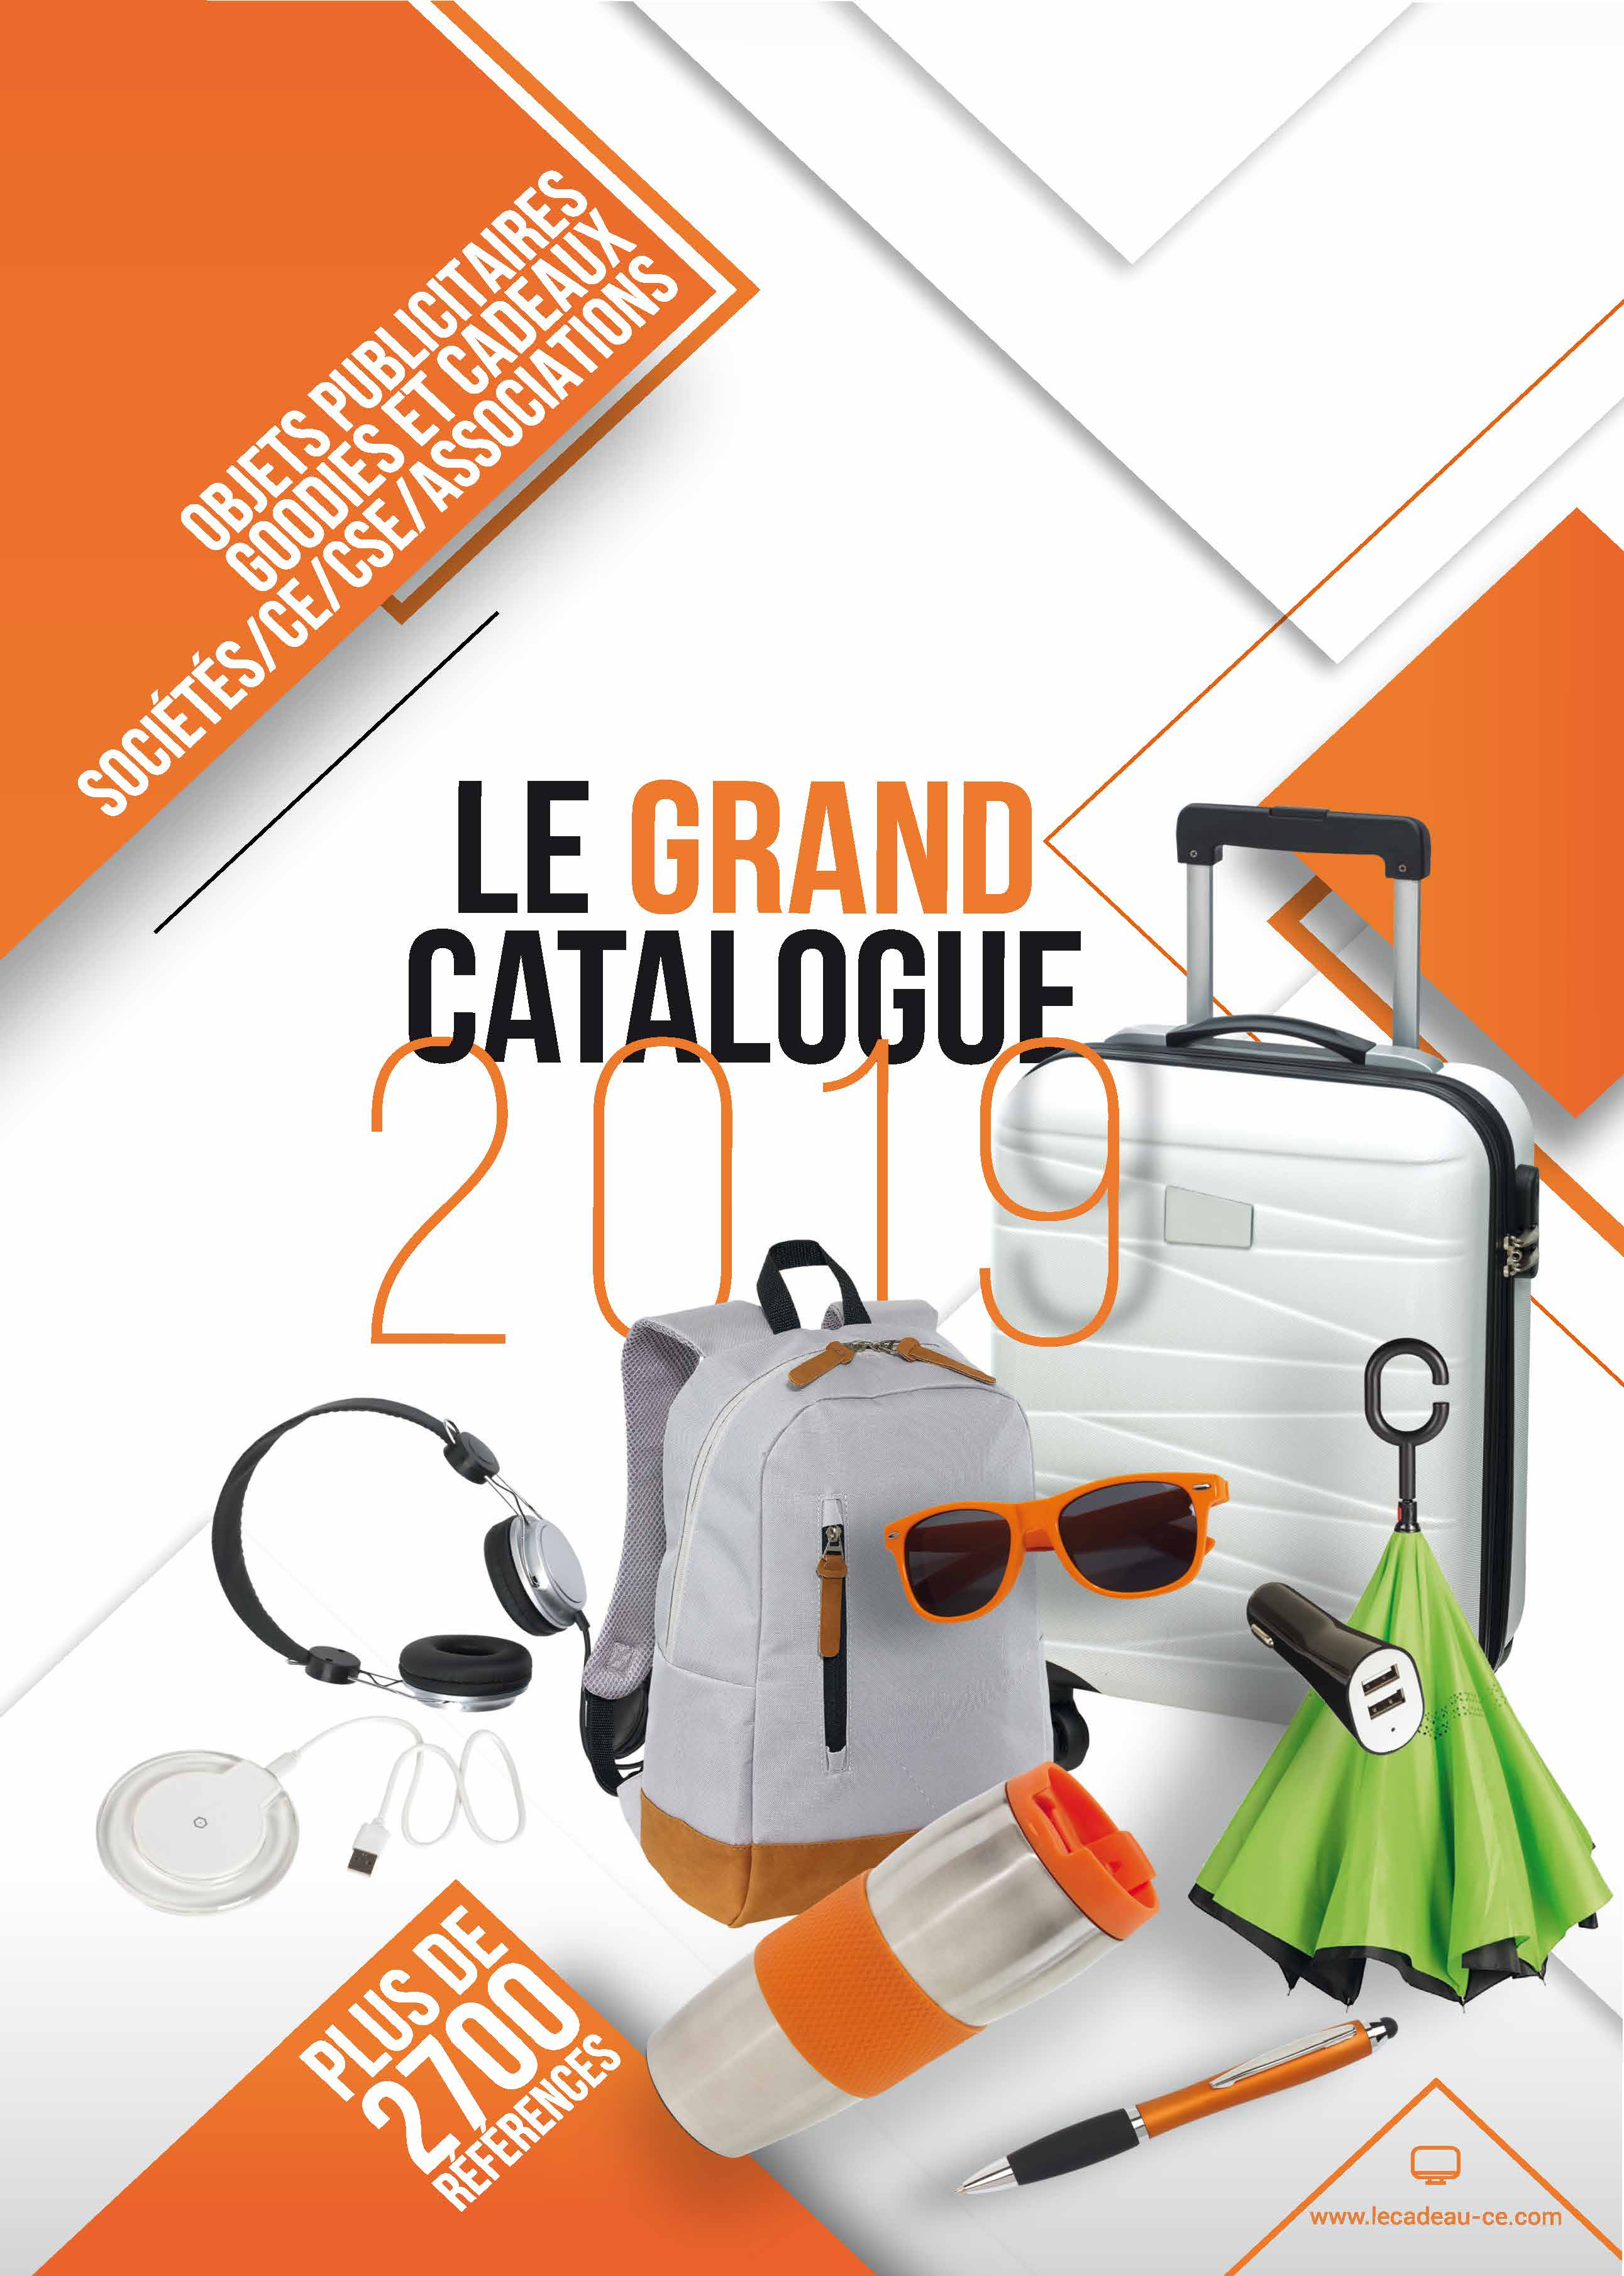 Le grand catalogue LE cadeau CE